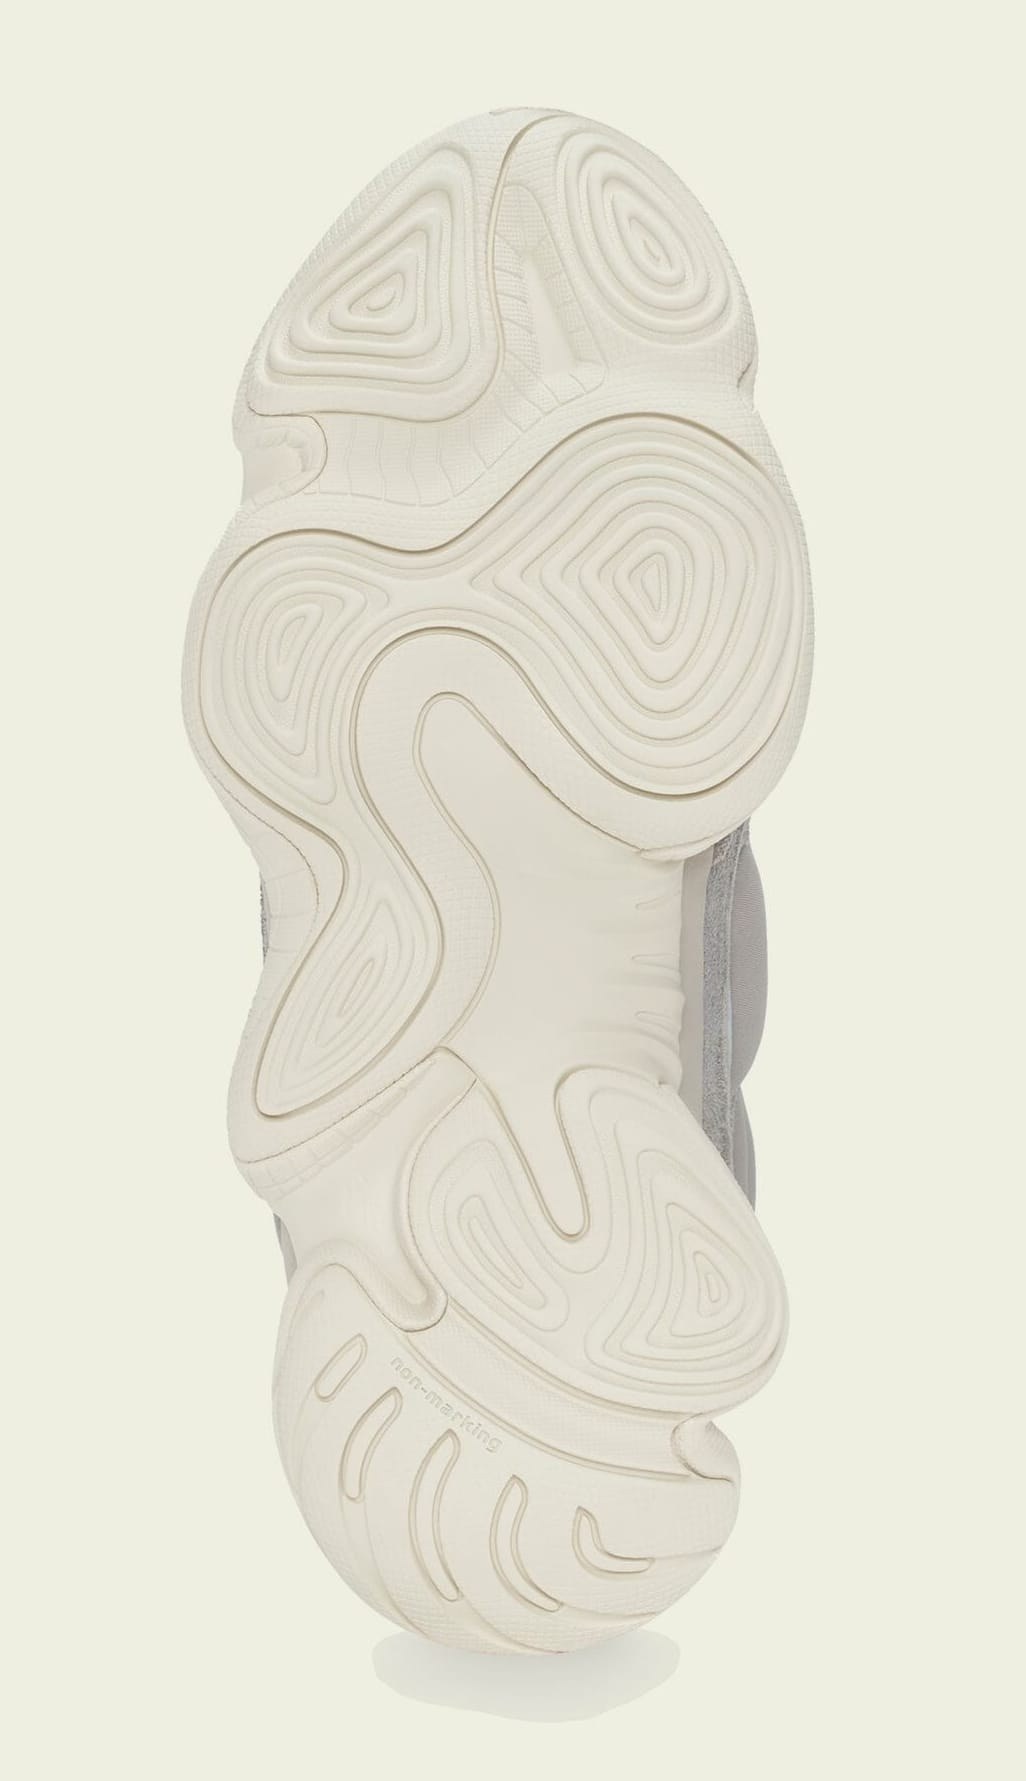 Adidas Yeezy 500 High 'Mist Stone' Outsole